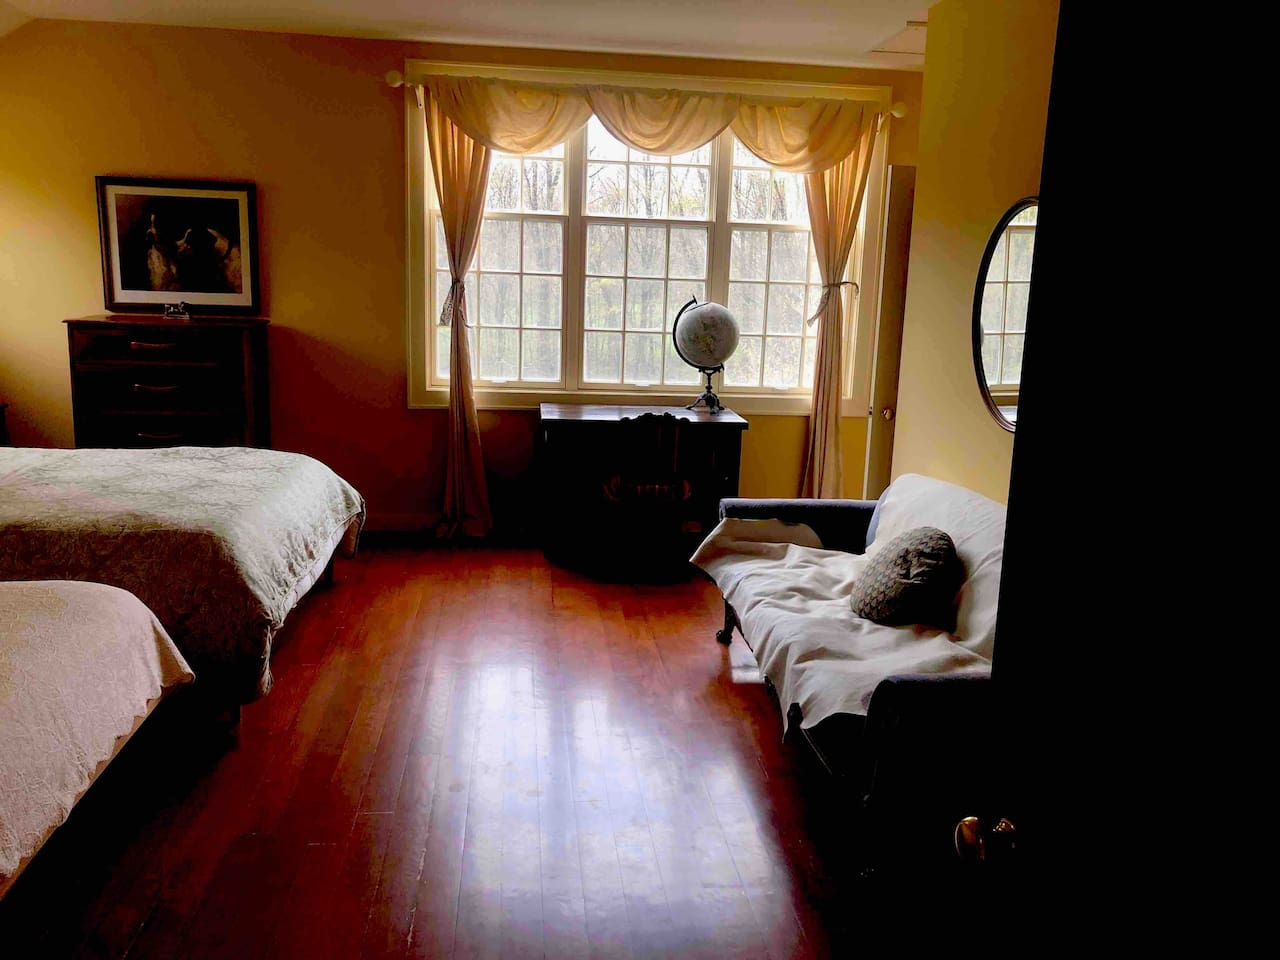 Beautiful cozy room with afternoon light, 2 queen beds, overlooking the horse paddocks.